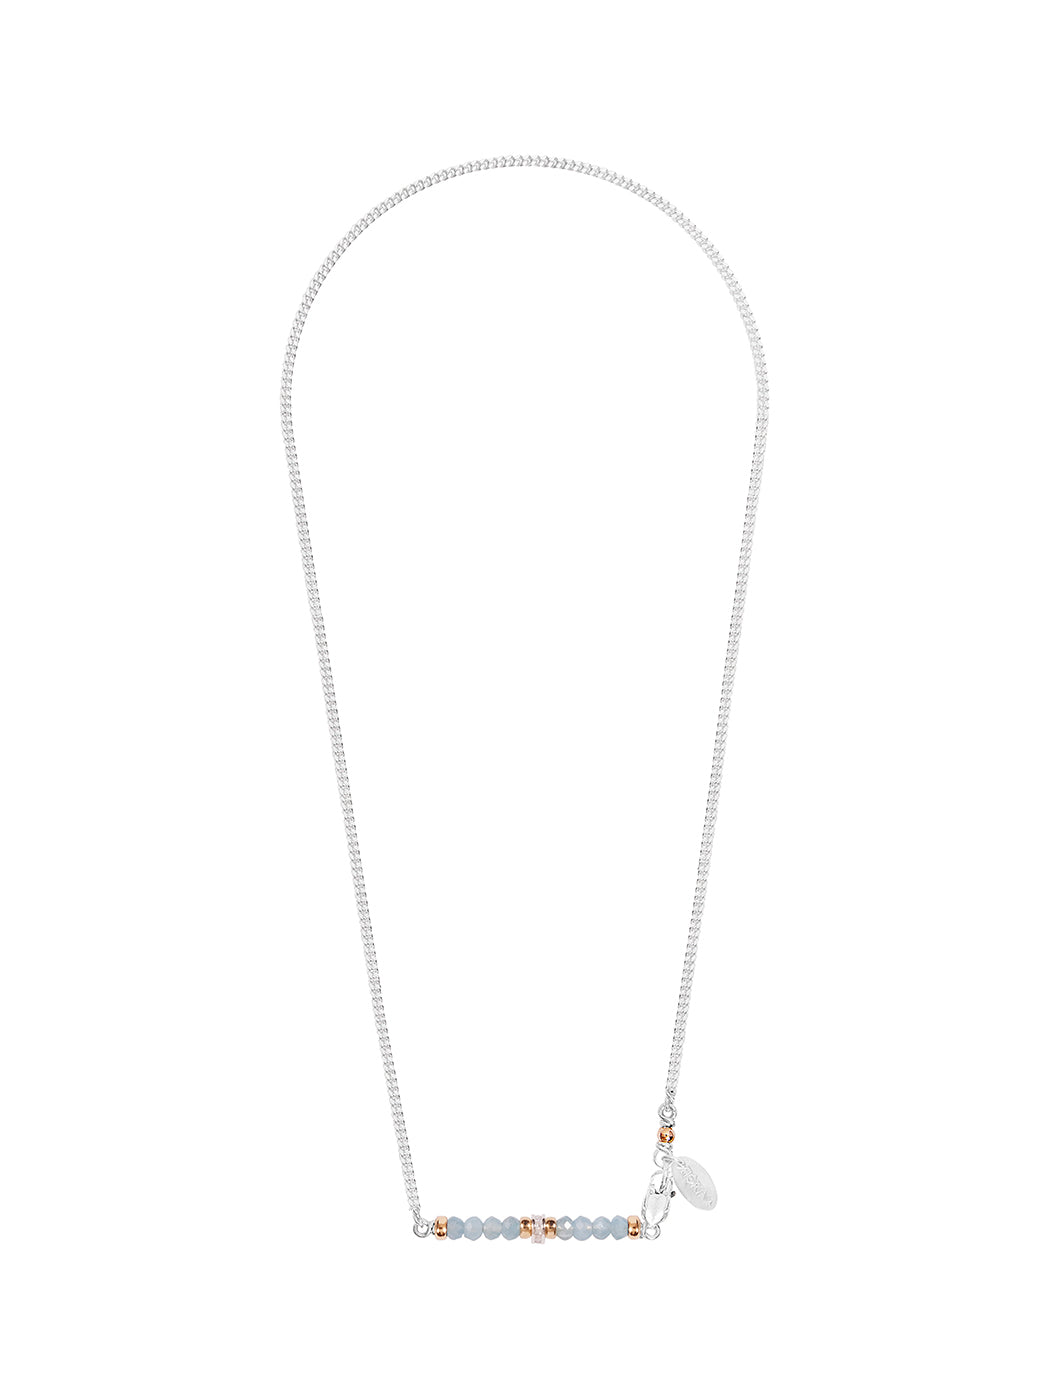 Fiorina Jewellery Silver Romance Necklace Aquamarine